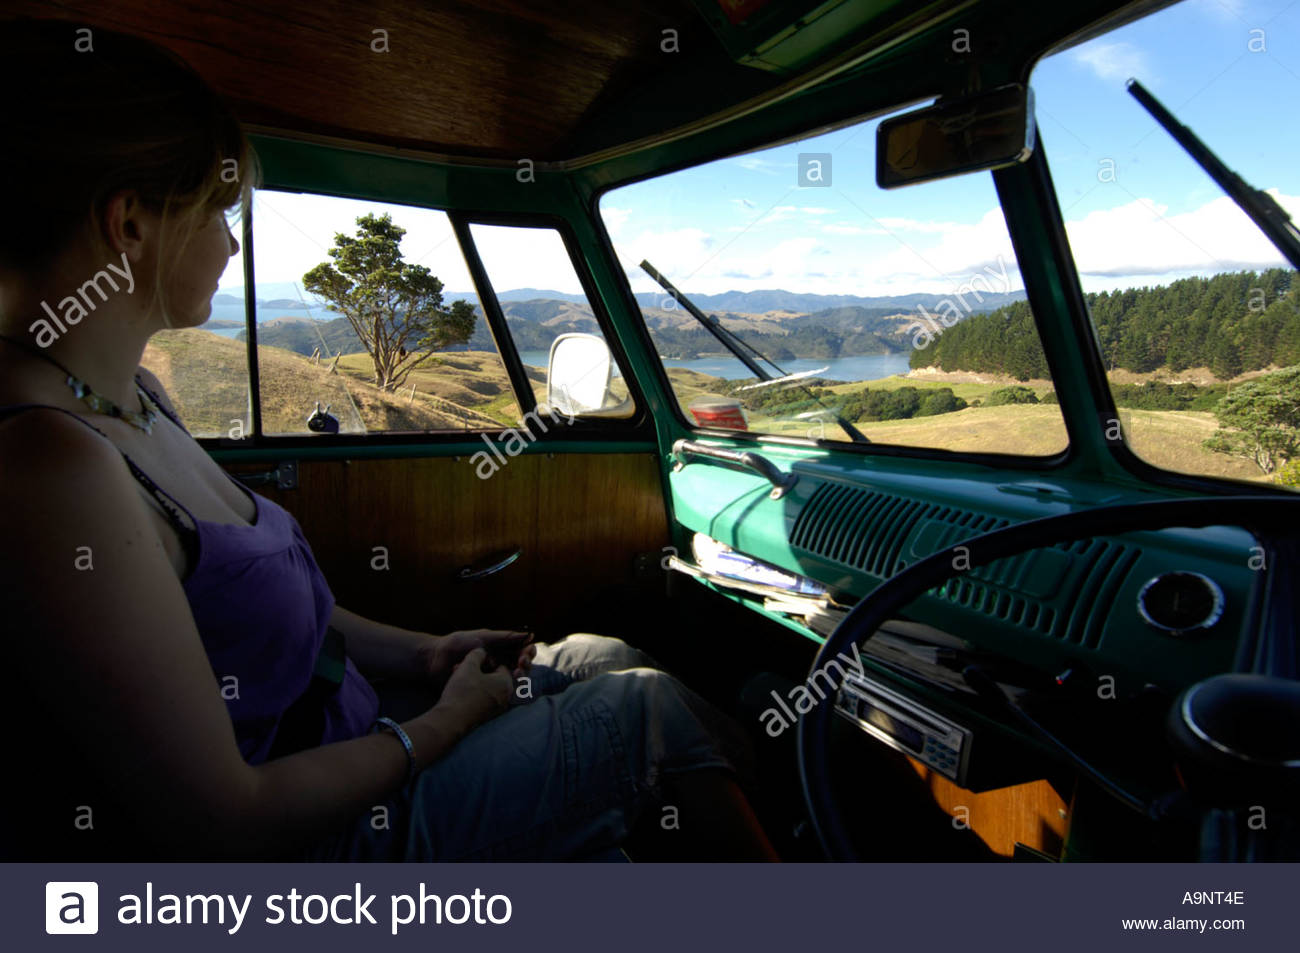 Classic Split Screen Volkswagen Campervan Interior Coromandel Peninsula New Zealand